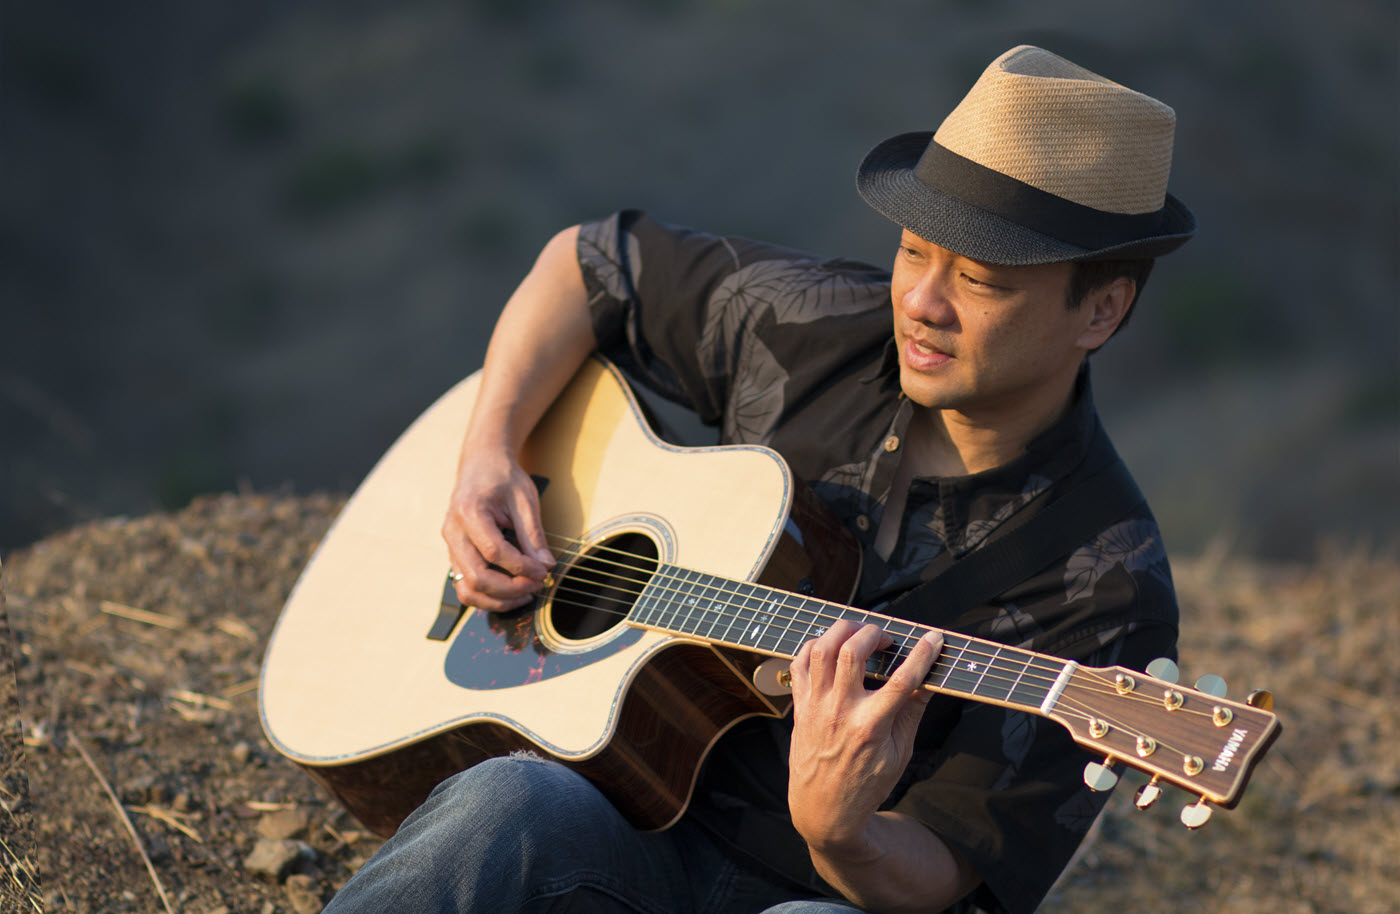 Young man in hat playing an acoustic guitar.